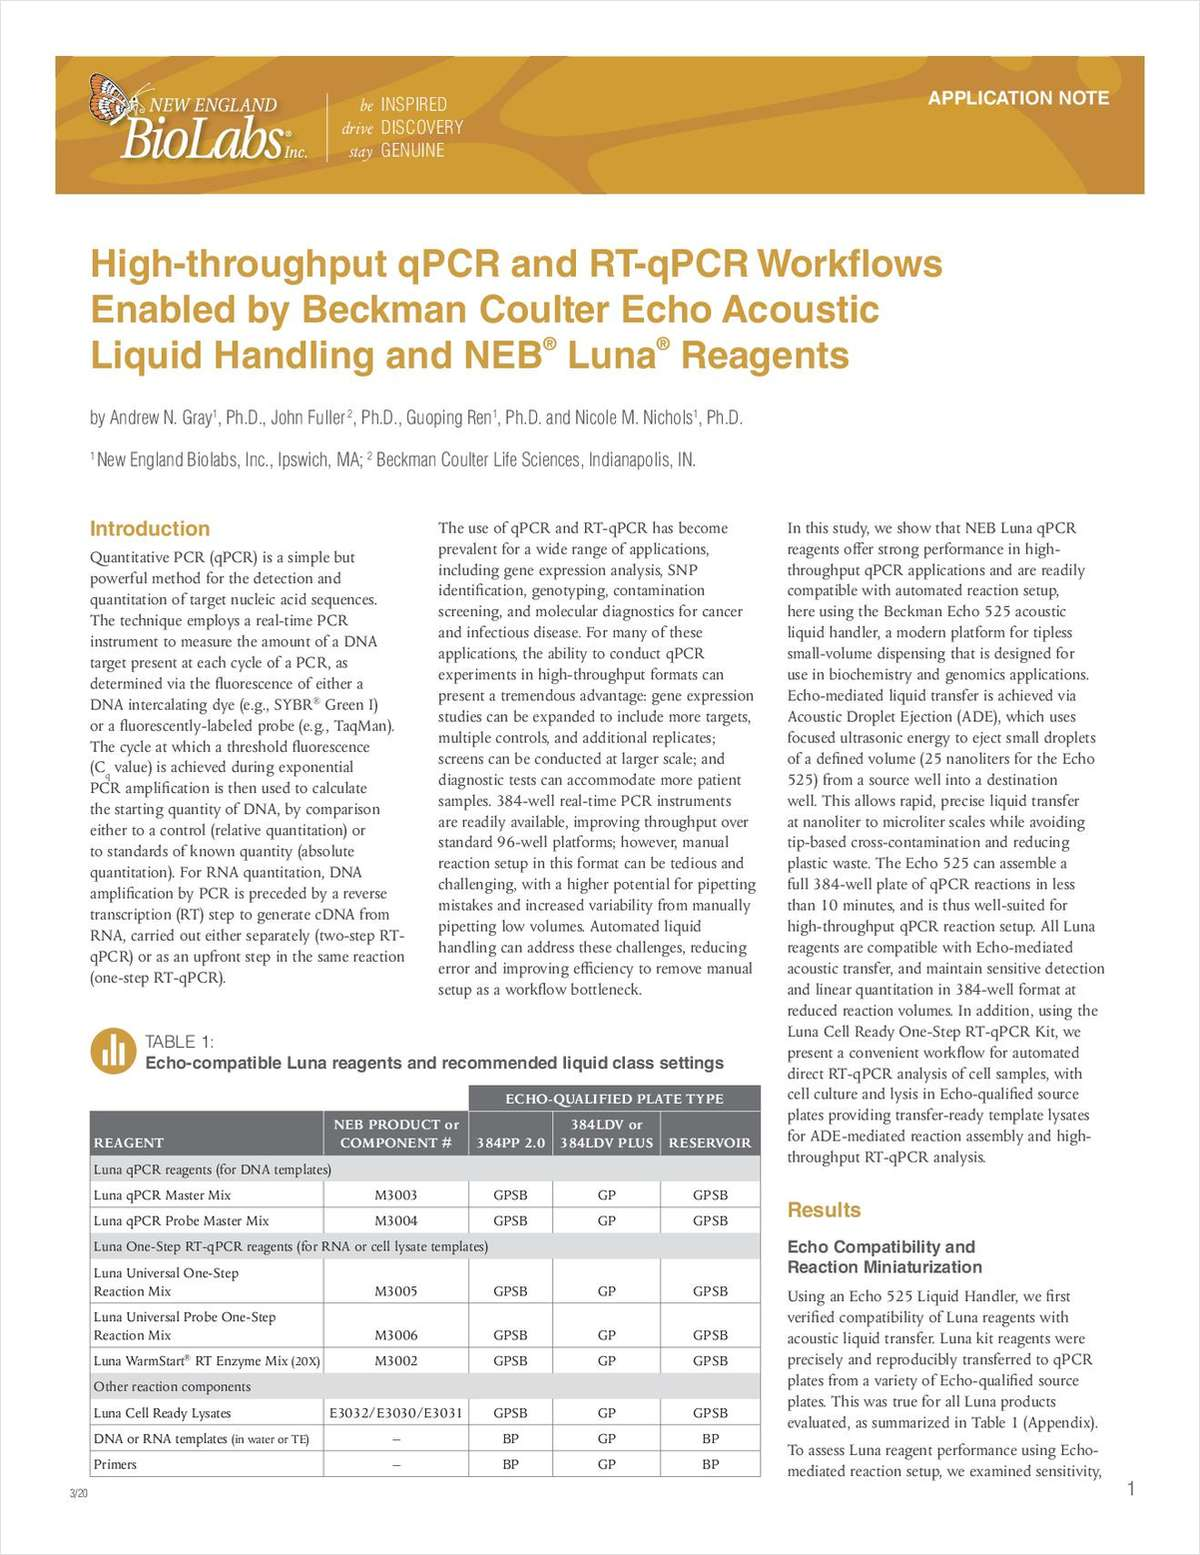 High-throughput qPCR and RT-qPCR Workflows Enabled by Beckman Coulter Echo Acoustic Liquid Handling and NEB Luna Reagents